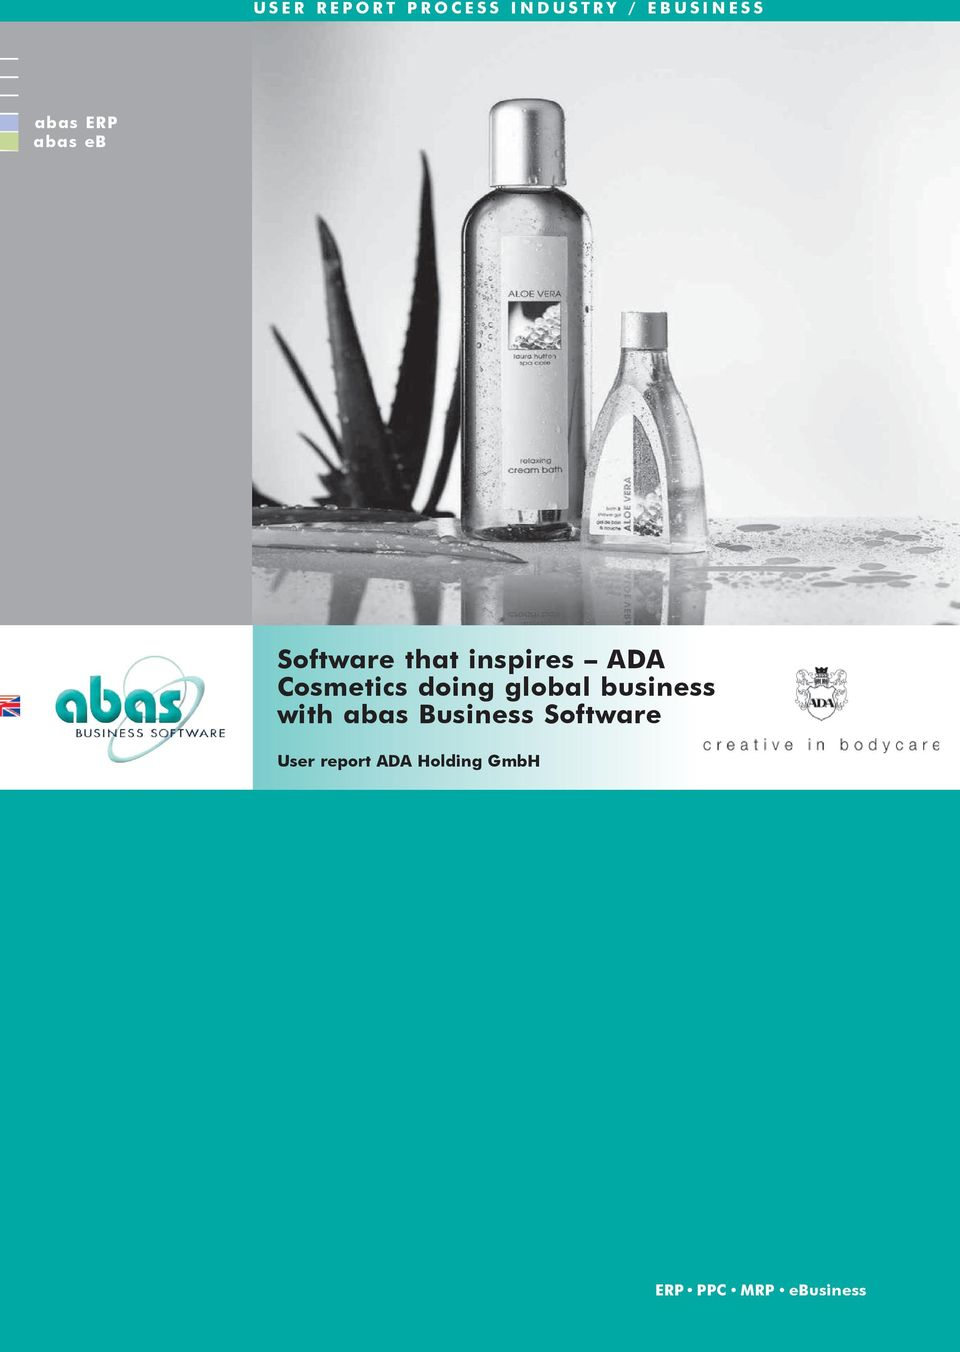 doing global business with abas Business